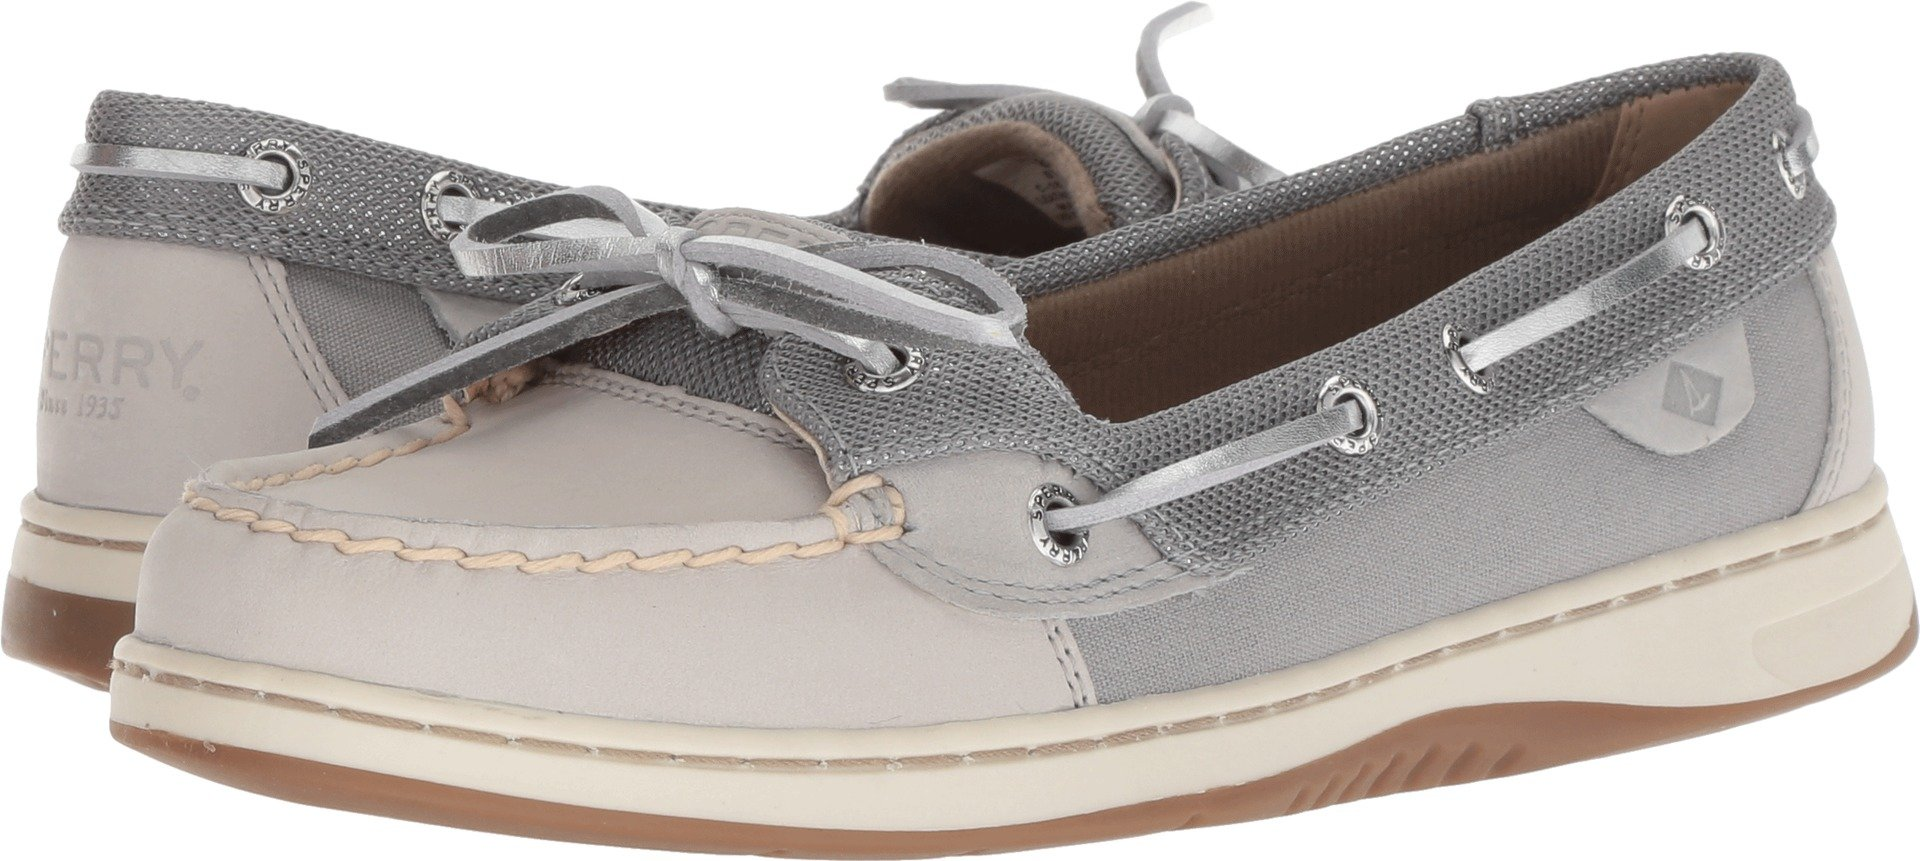 Sperry Women's Angelfish Metallic Mesh Vapor 6 M US by Sperry (Image #1)